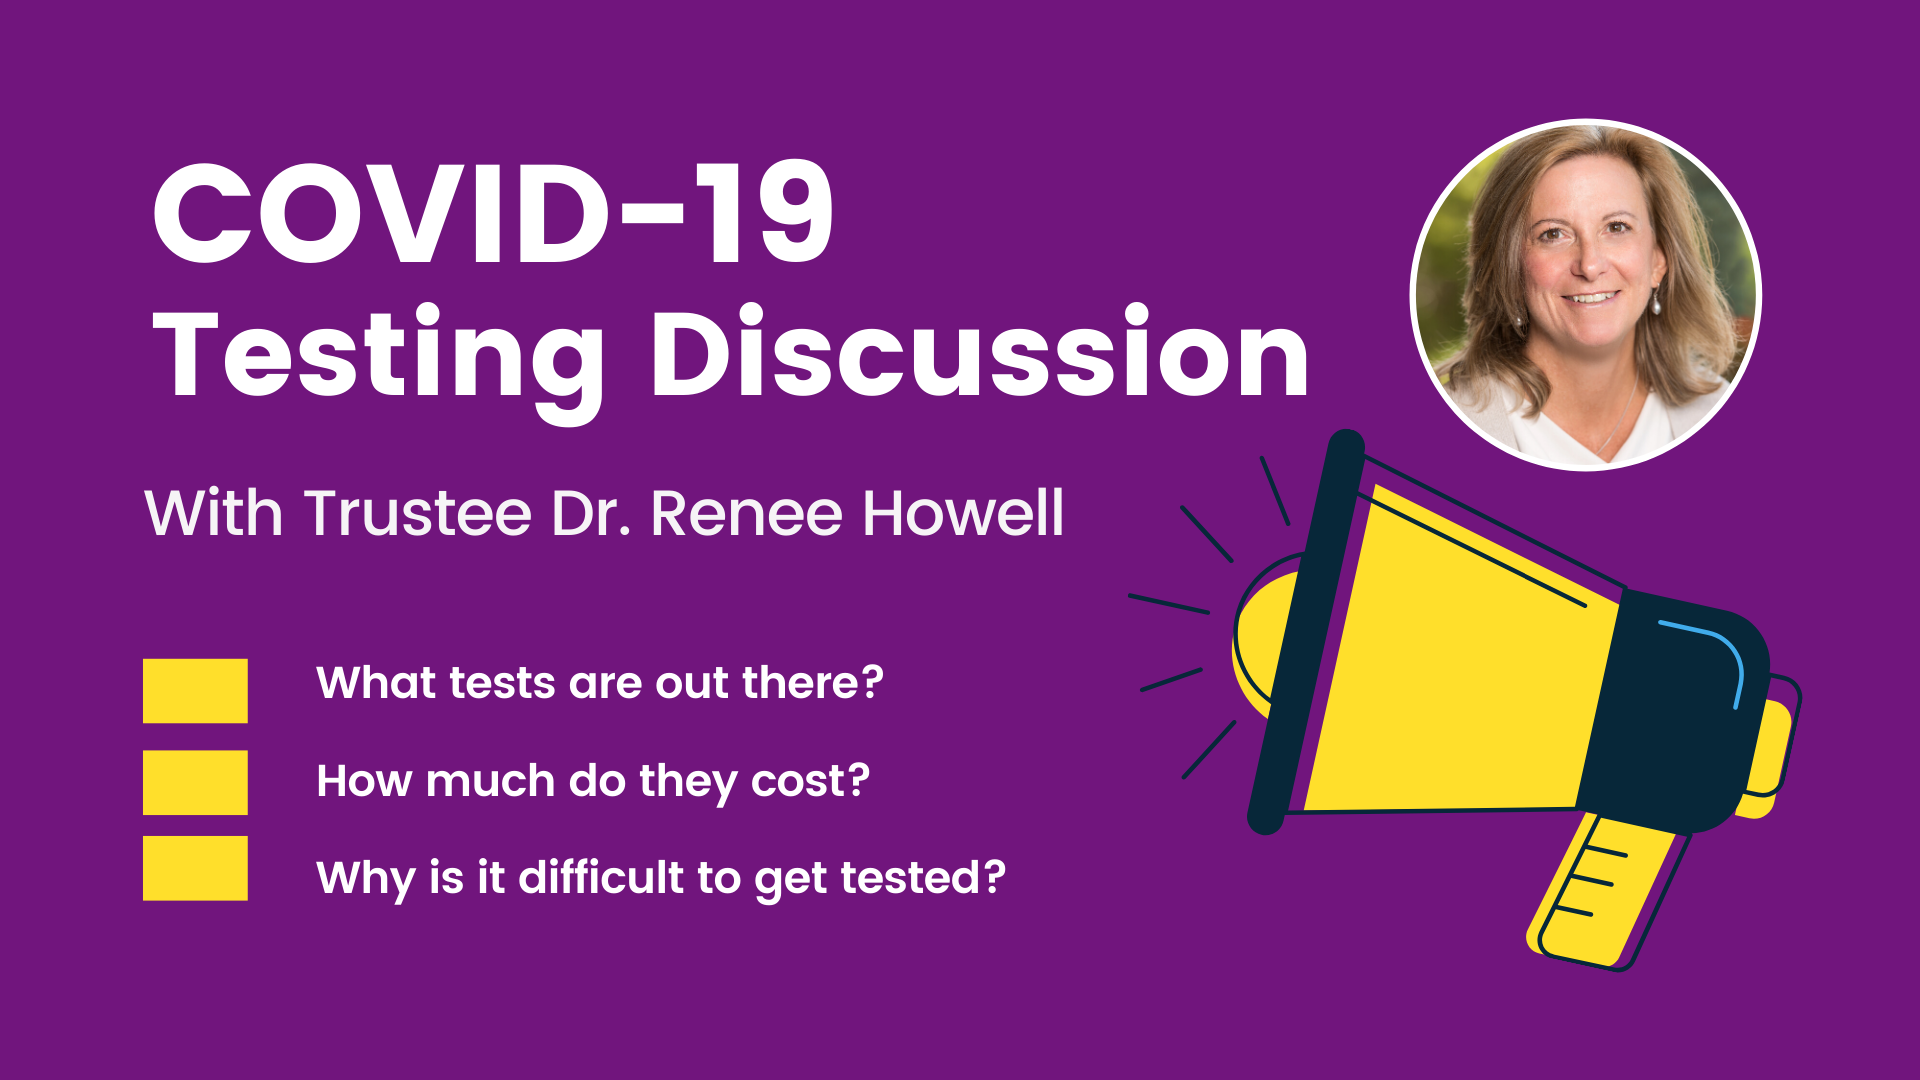 Covid-19 Testing Discussion with Dr. Renee Howell